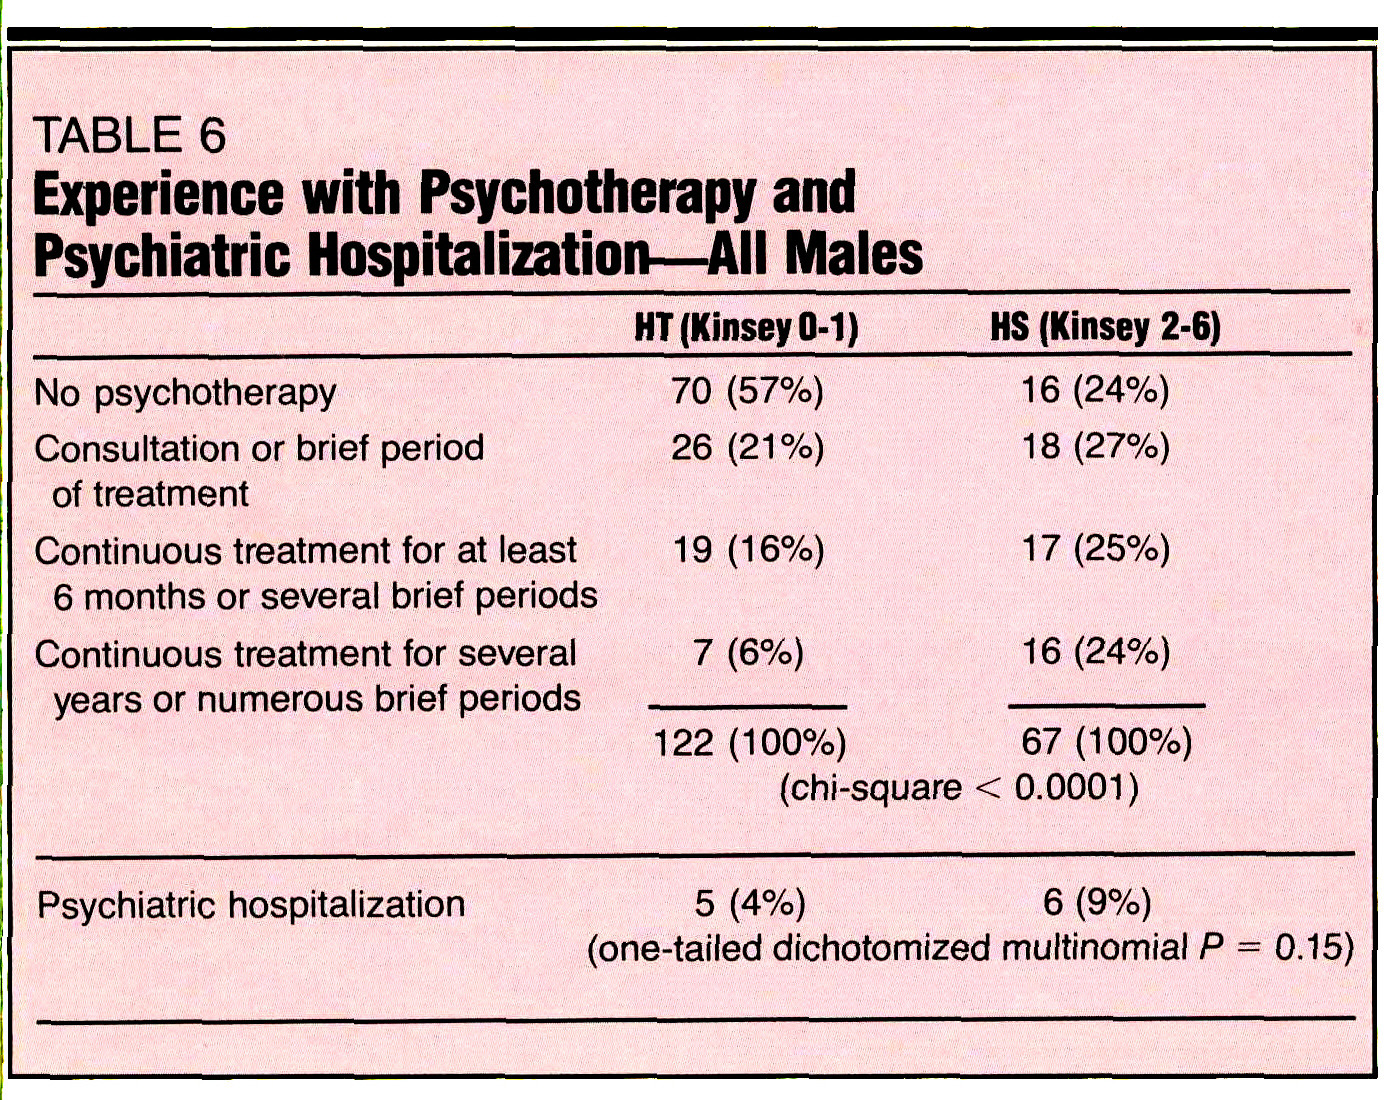 TABLE 6Experience with Psychotherapy and Psychiatric Hospitalization- All Males